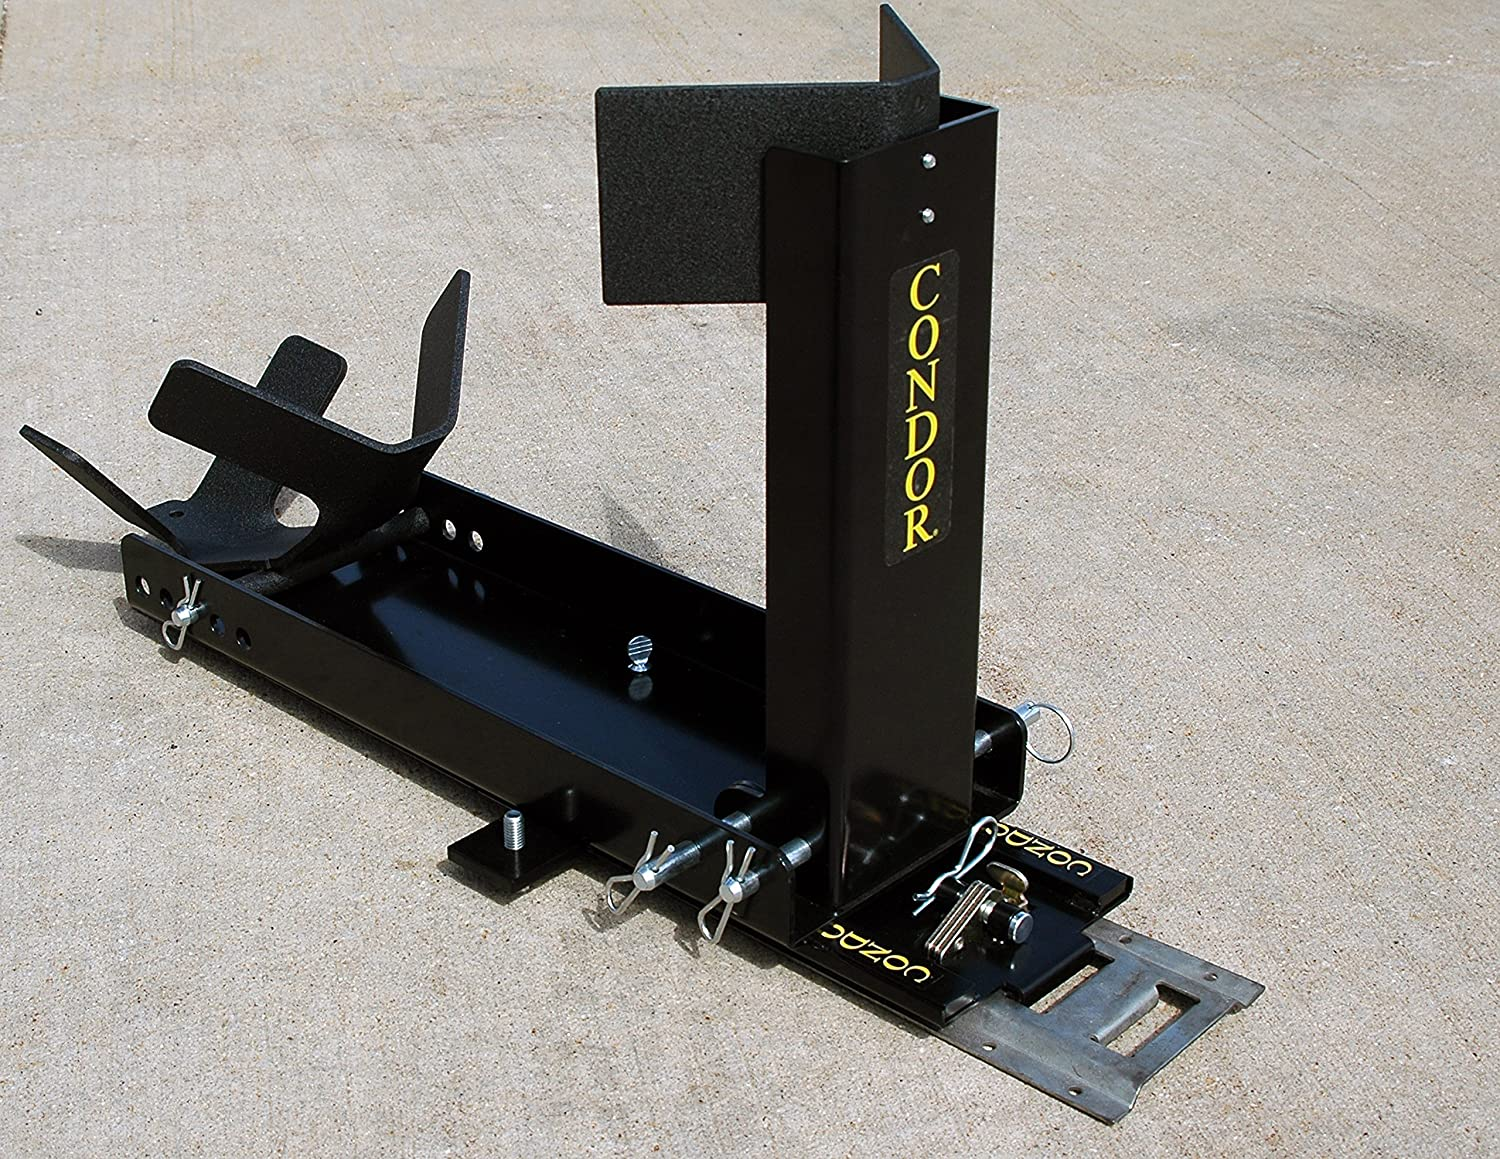 Part# SC2000 Trailer Stand Condor Motorcycle E-track Adapter for Trailer-only Chock E-TRACK ADAPTOR